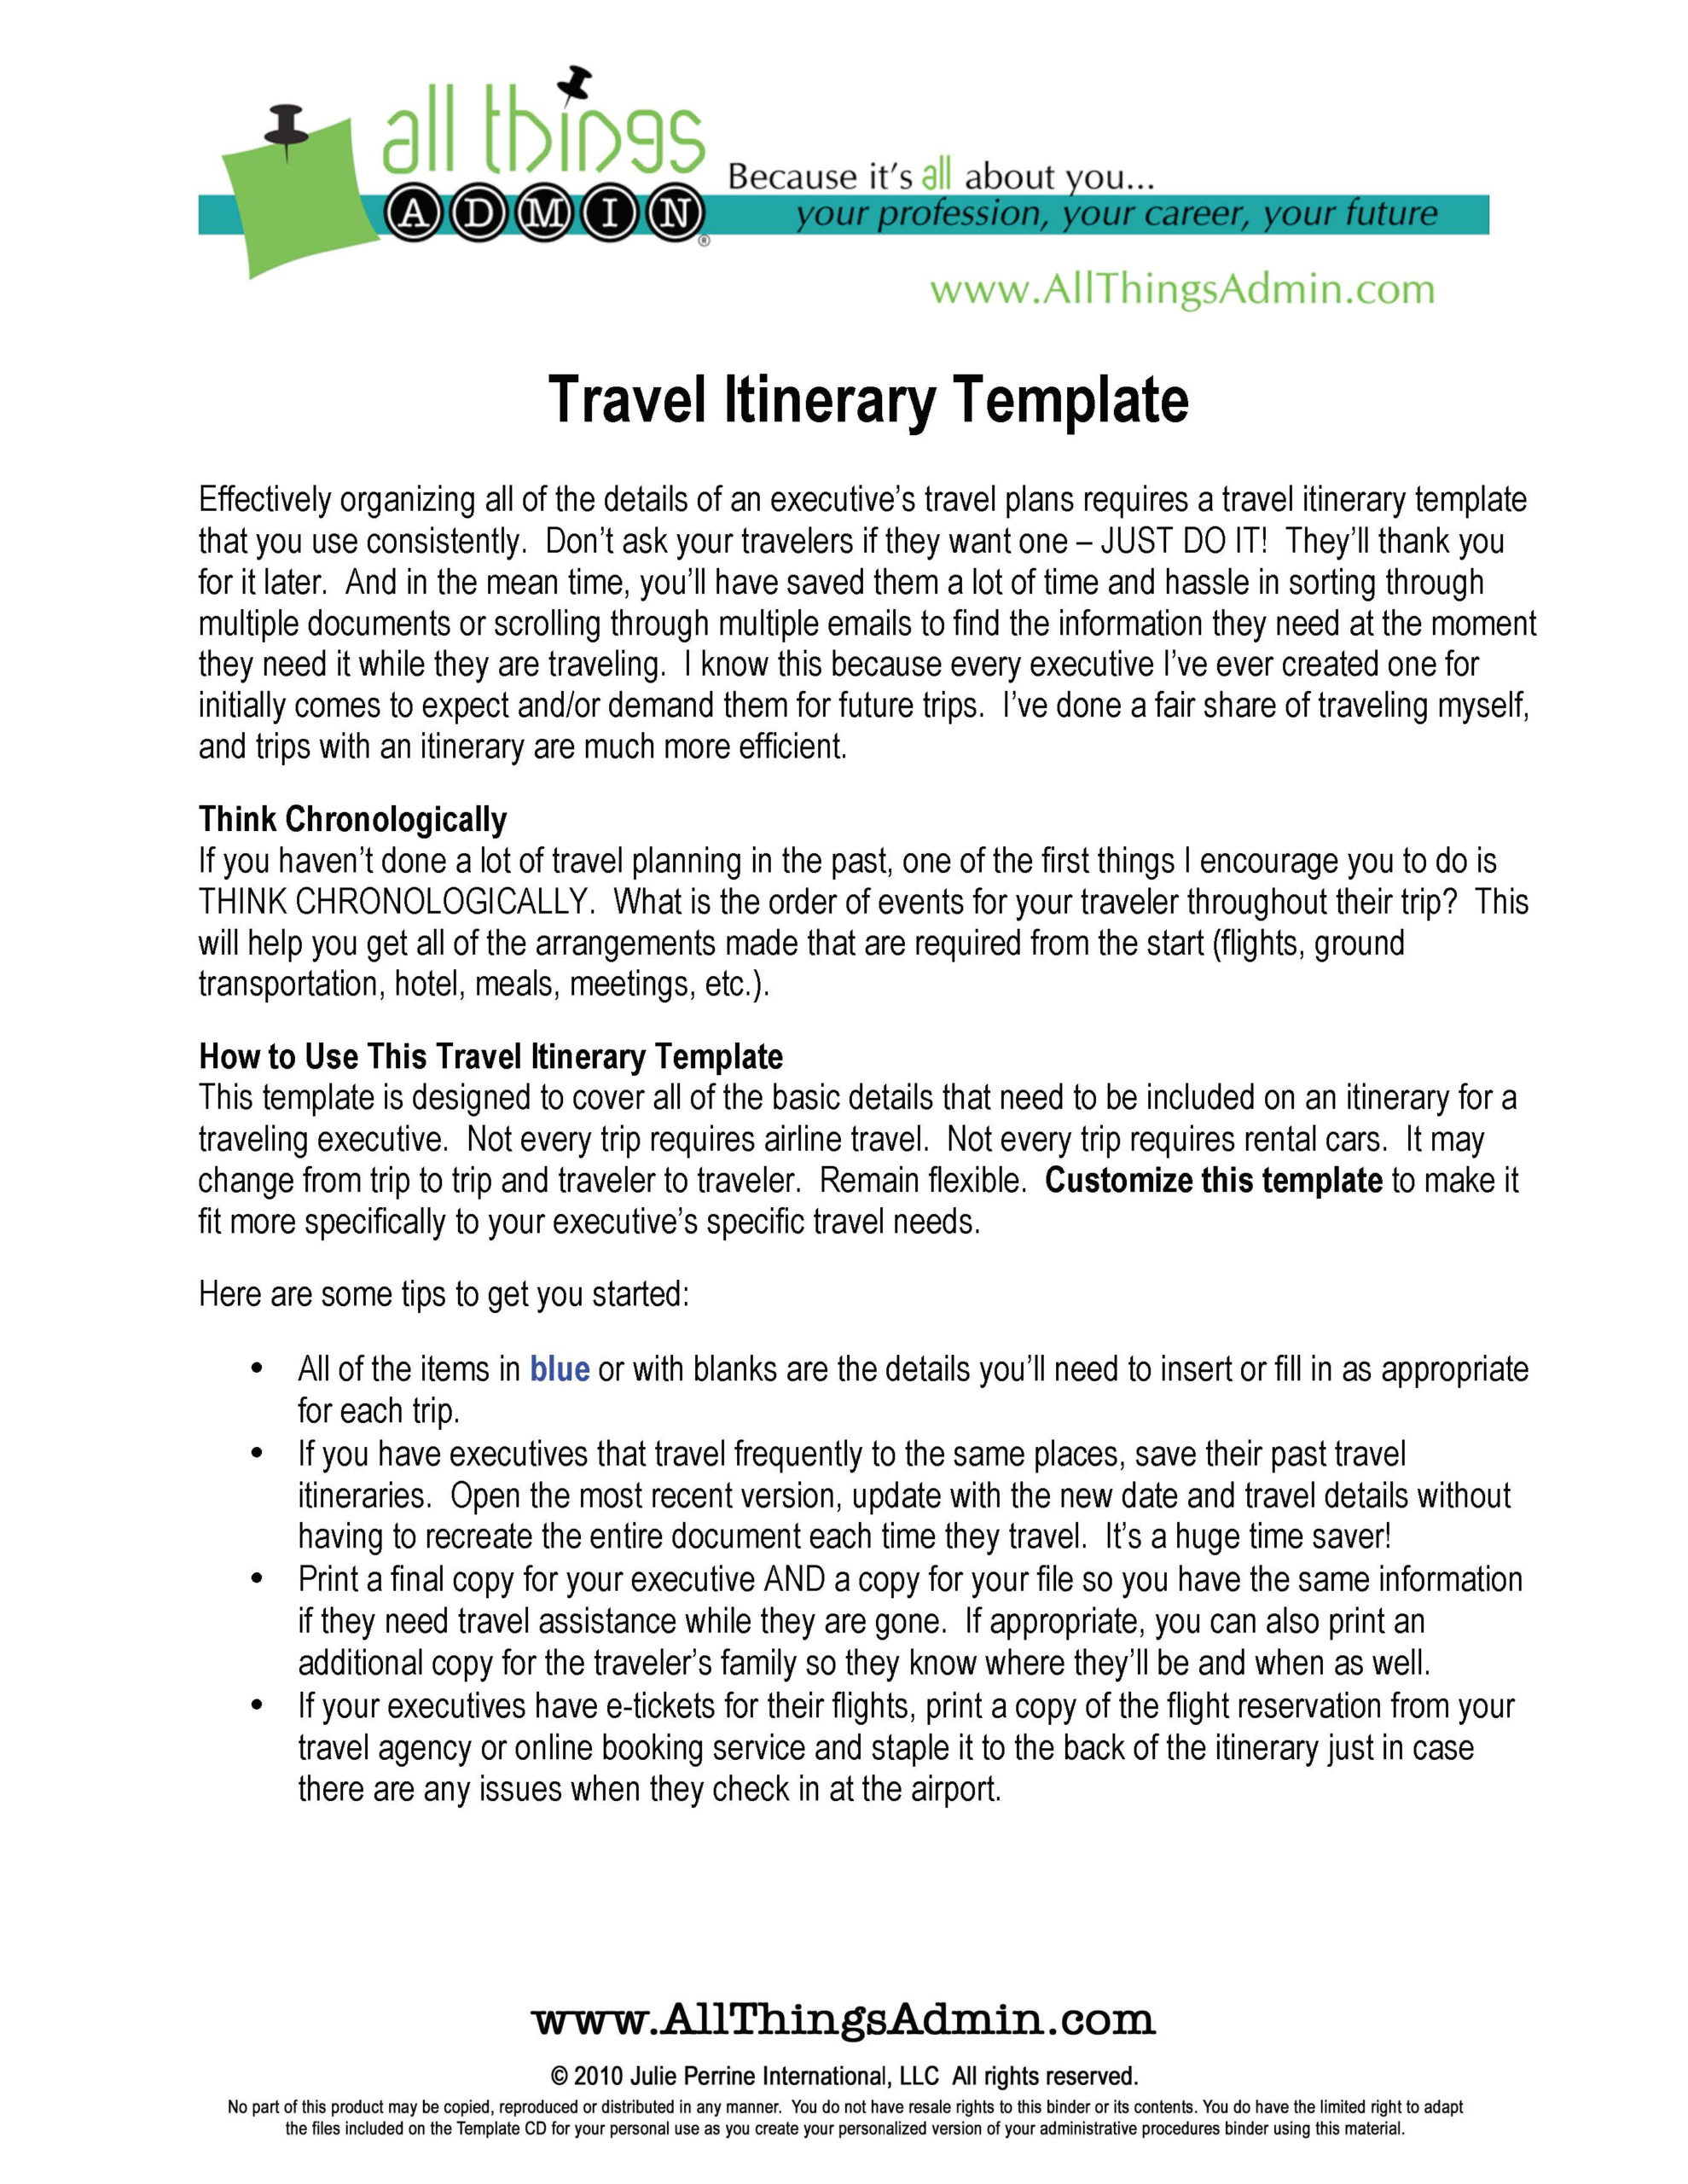 Basic Flight Itinerary Template – Pdf Format | E Database With Regard To Executive Assistant Travel Itinerary Template